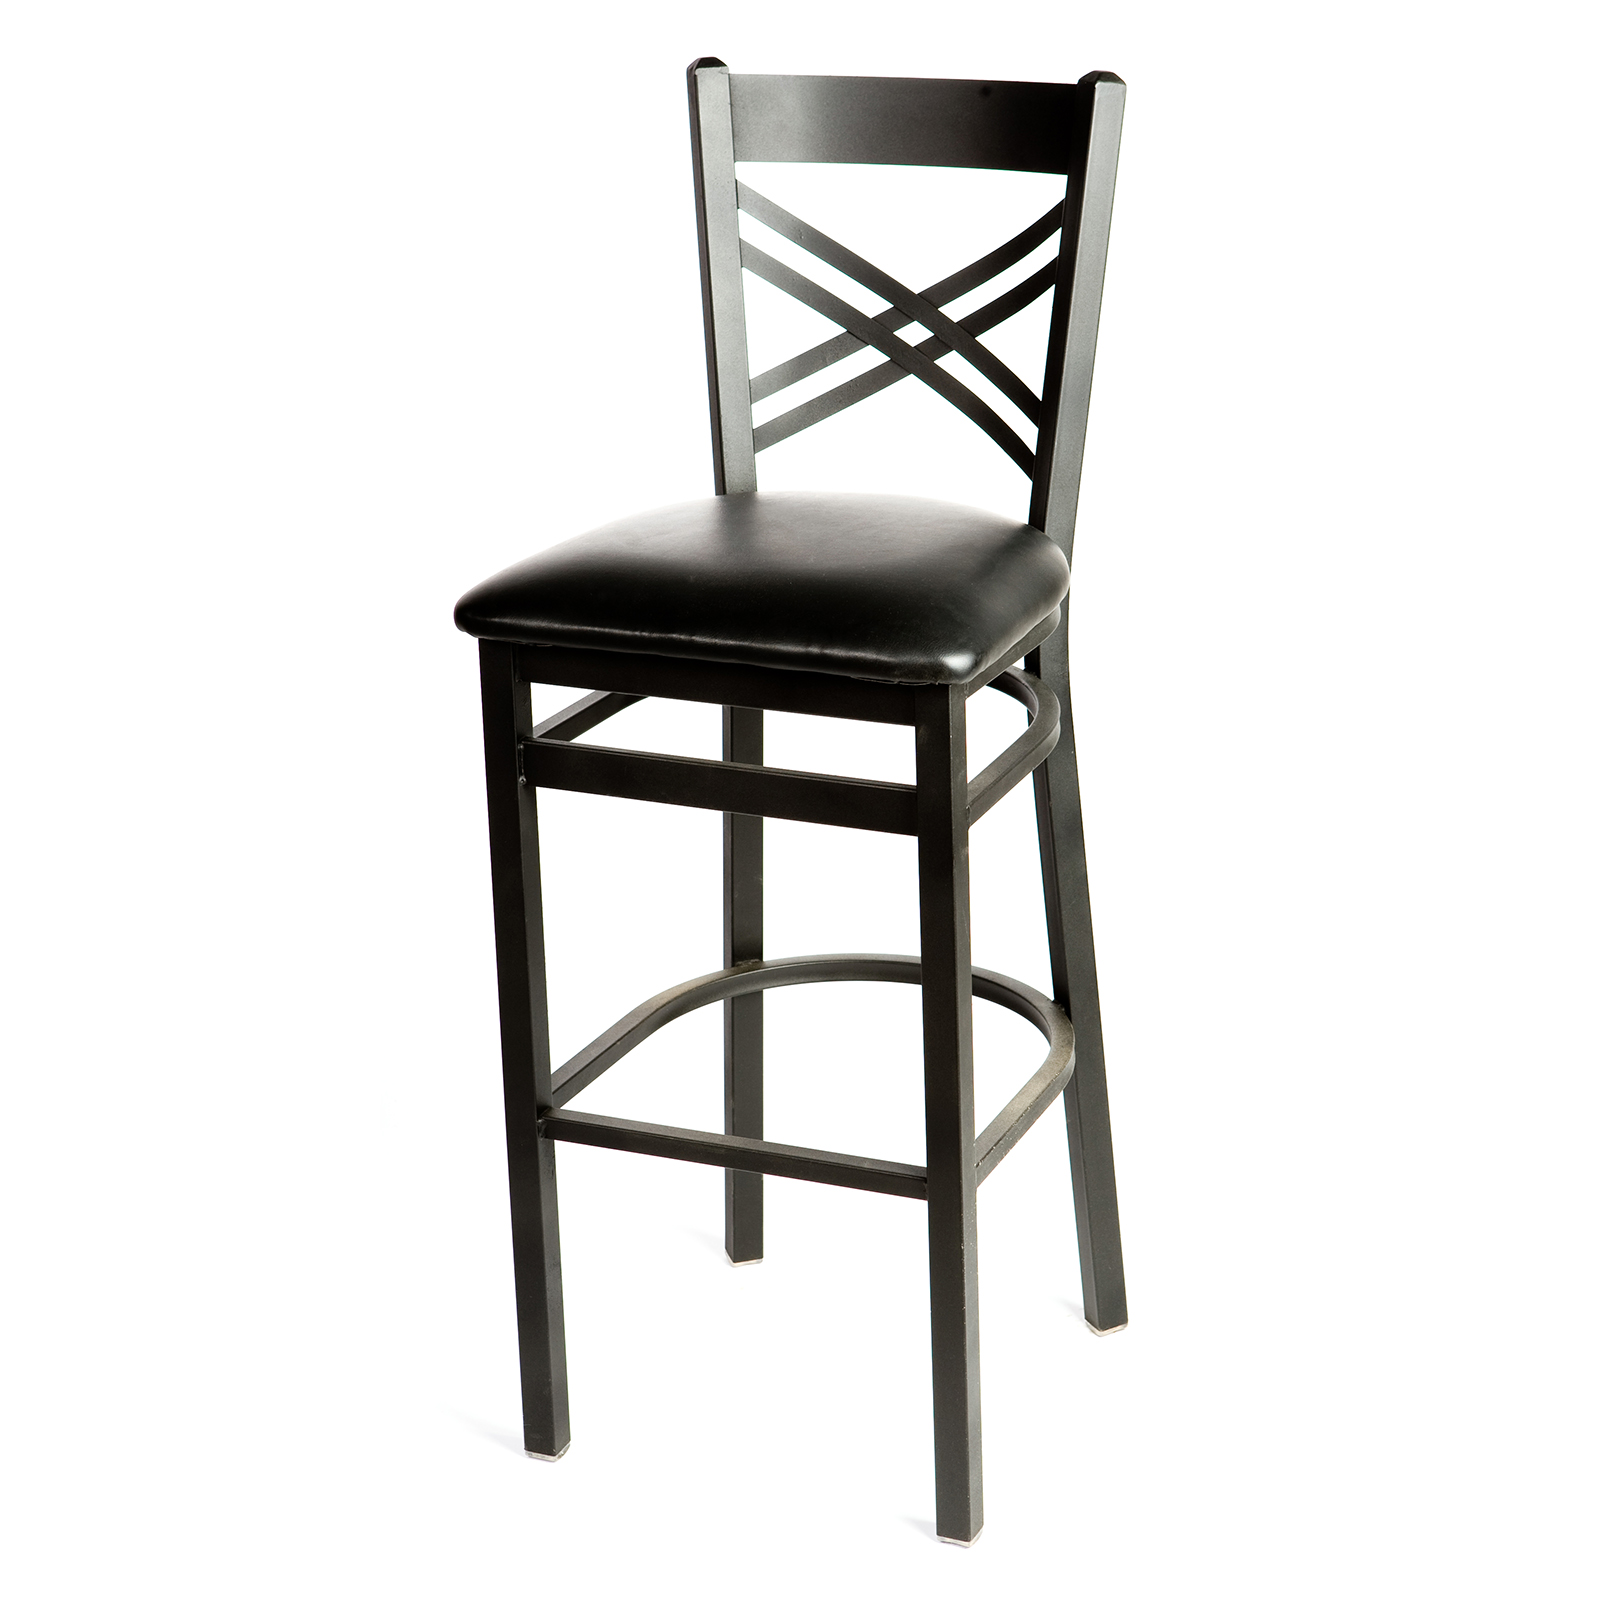 Oak Street SL2130-1 bar stool, indoor